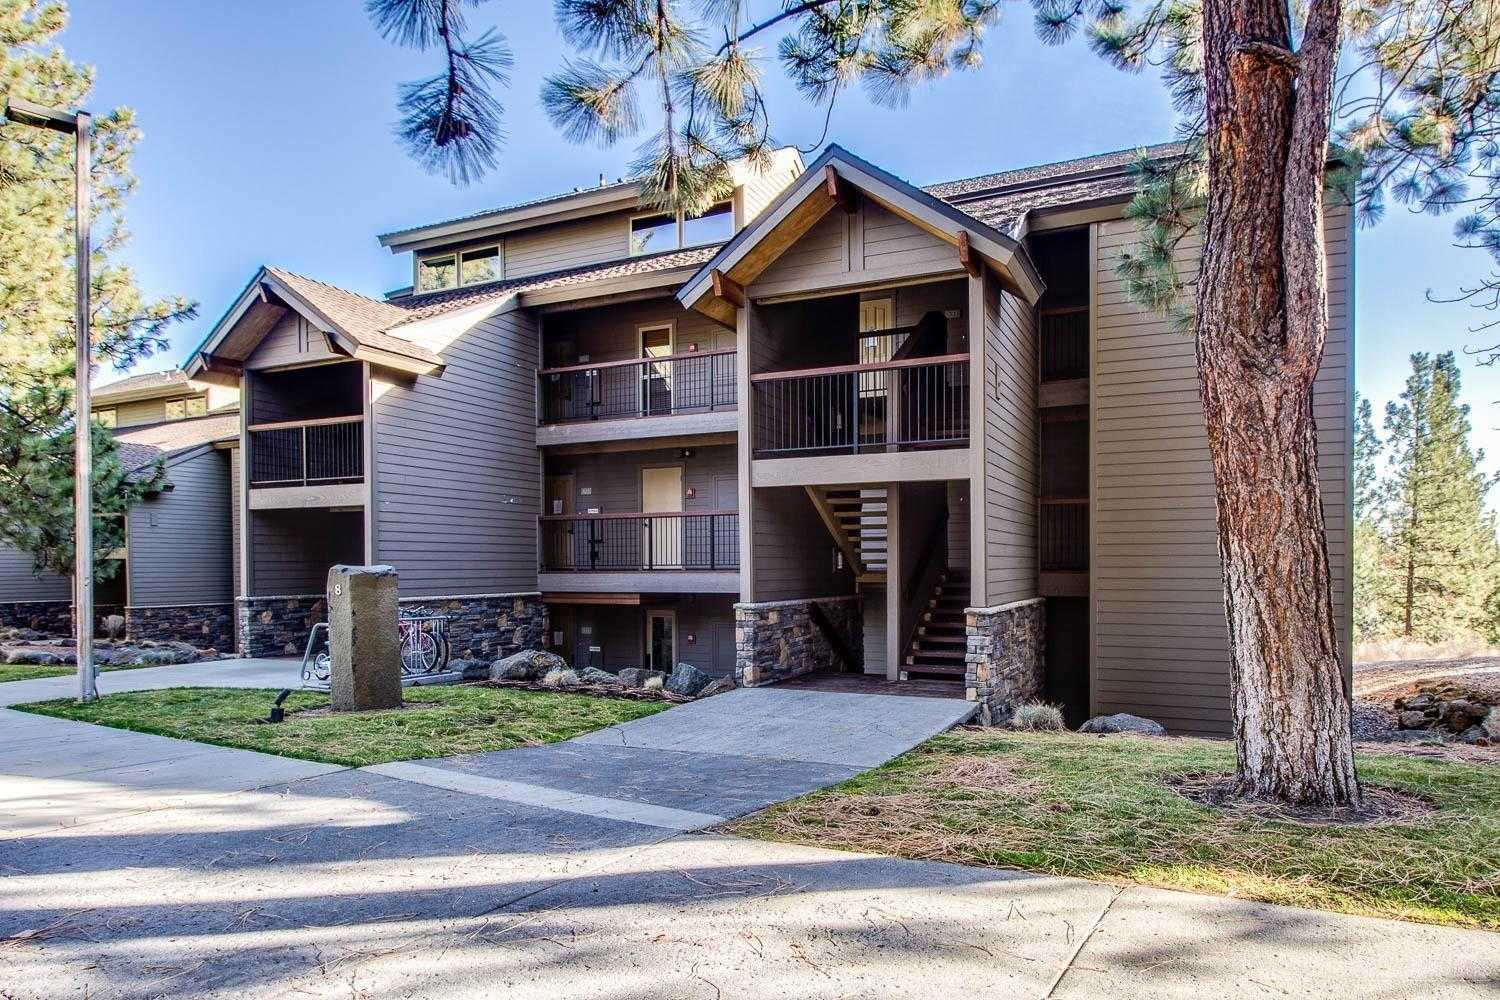 $199,950 - 2Br/2Ba -  for Sale in Bend